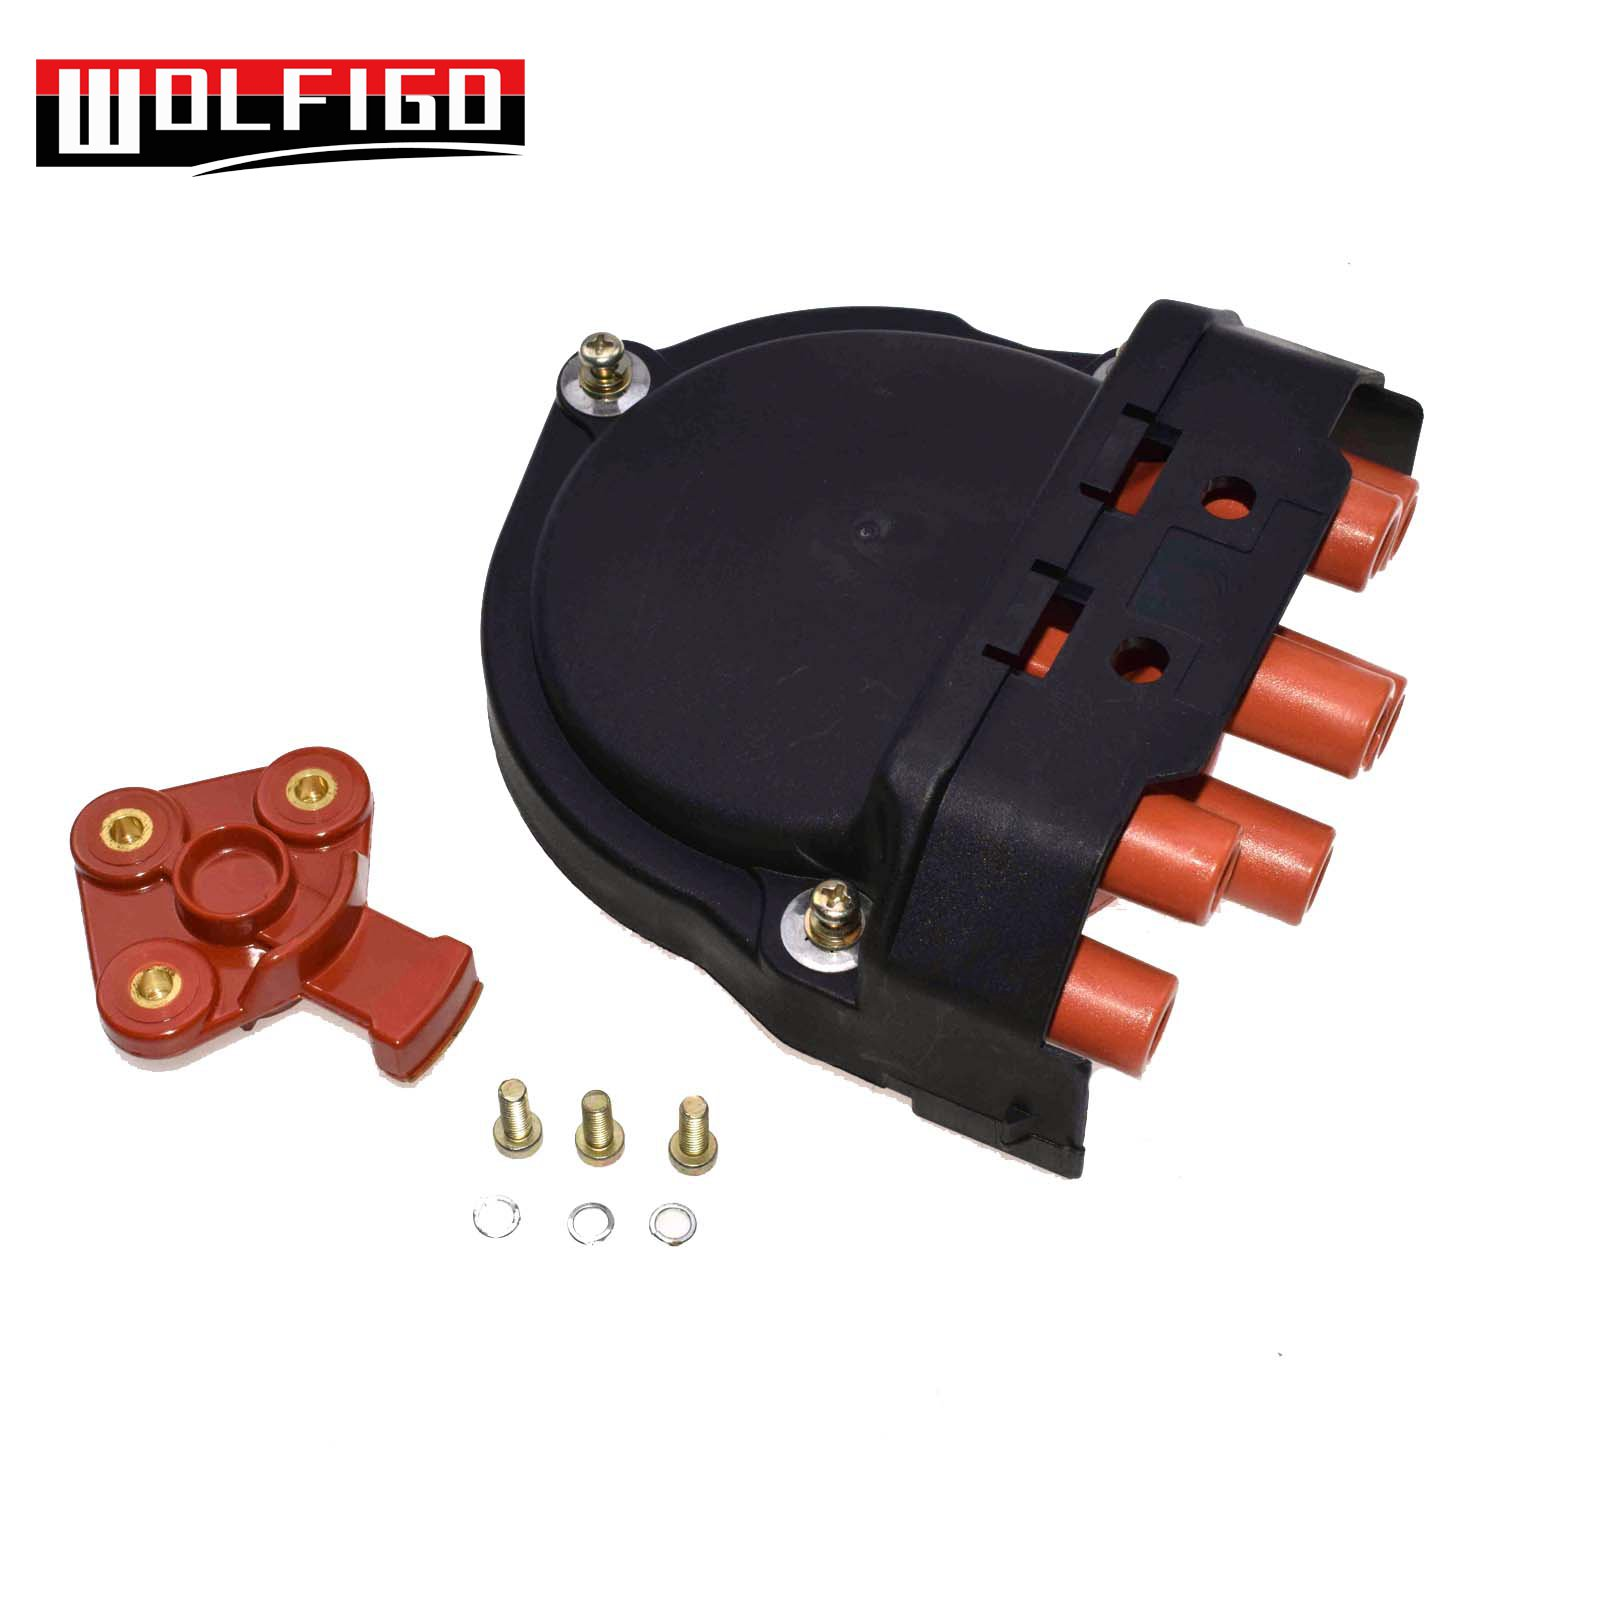 WOLFIGO NEW Distributor Cap Rotor For BMW E23 E24 E28 E30 E31 E32 E34 12111725070,12111734110,2 11 1 715 905, 12 11 1 734 110